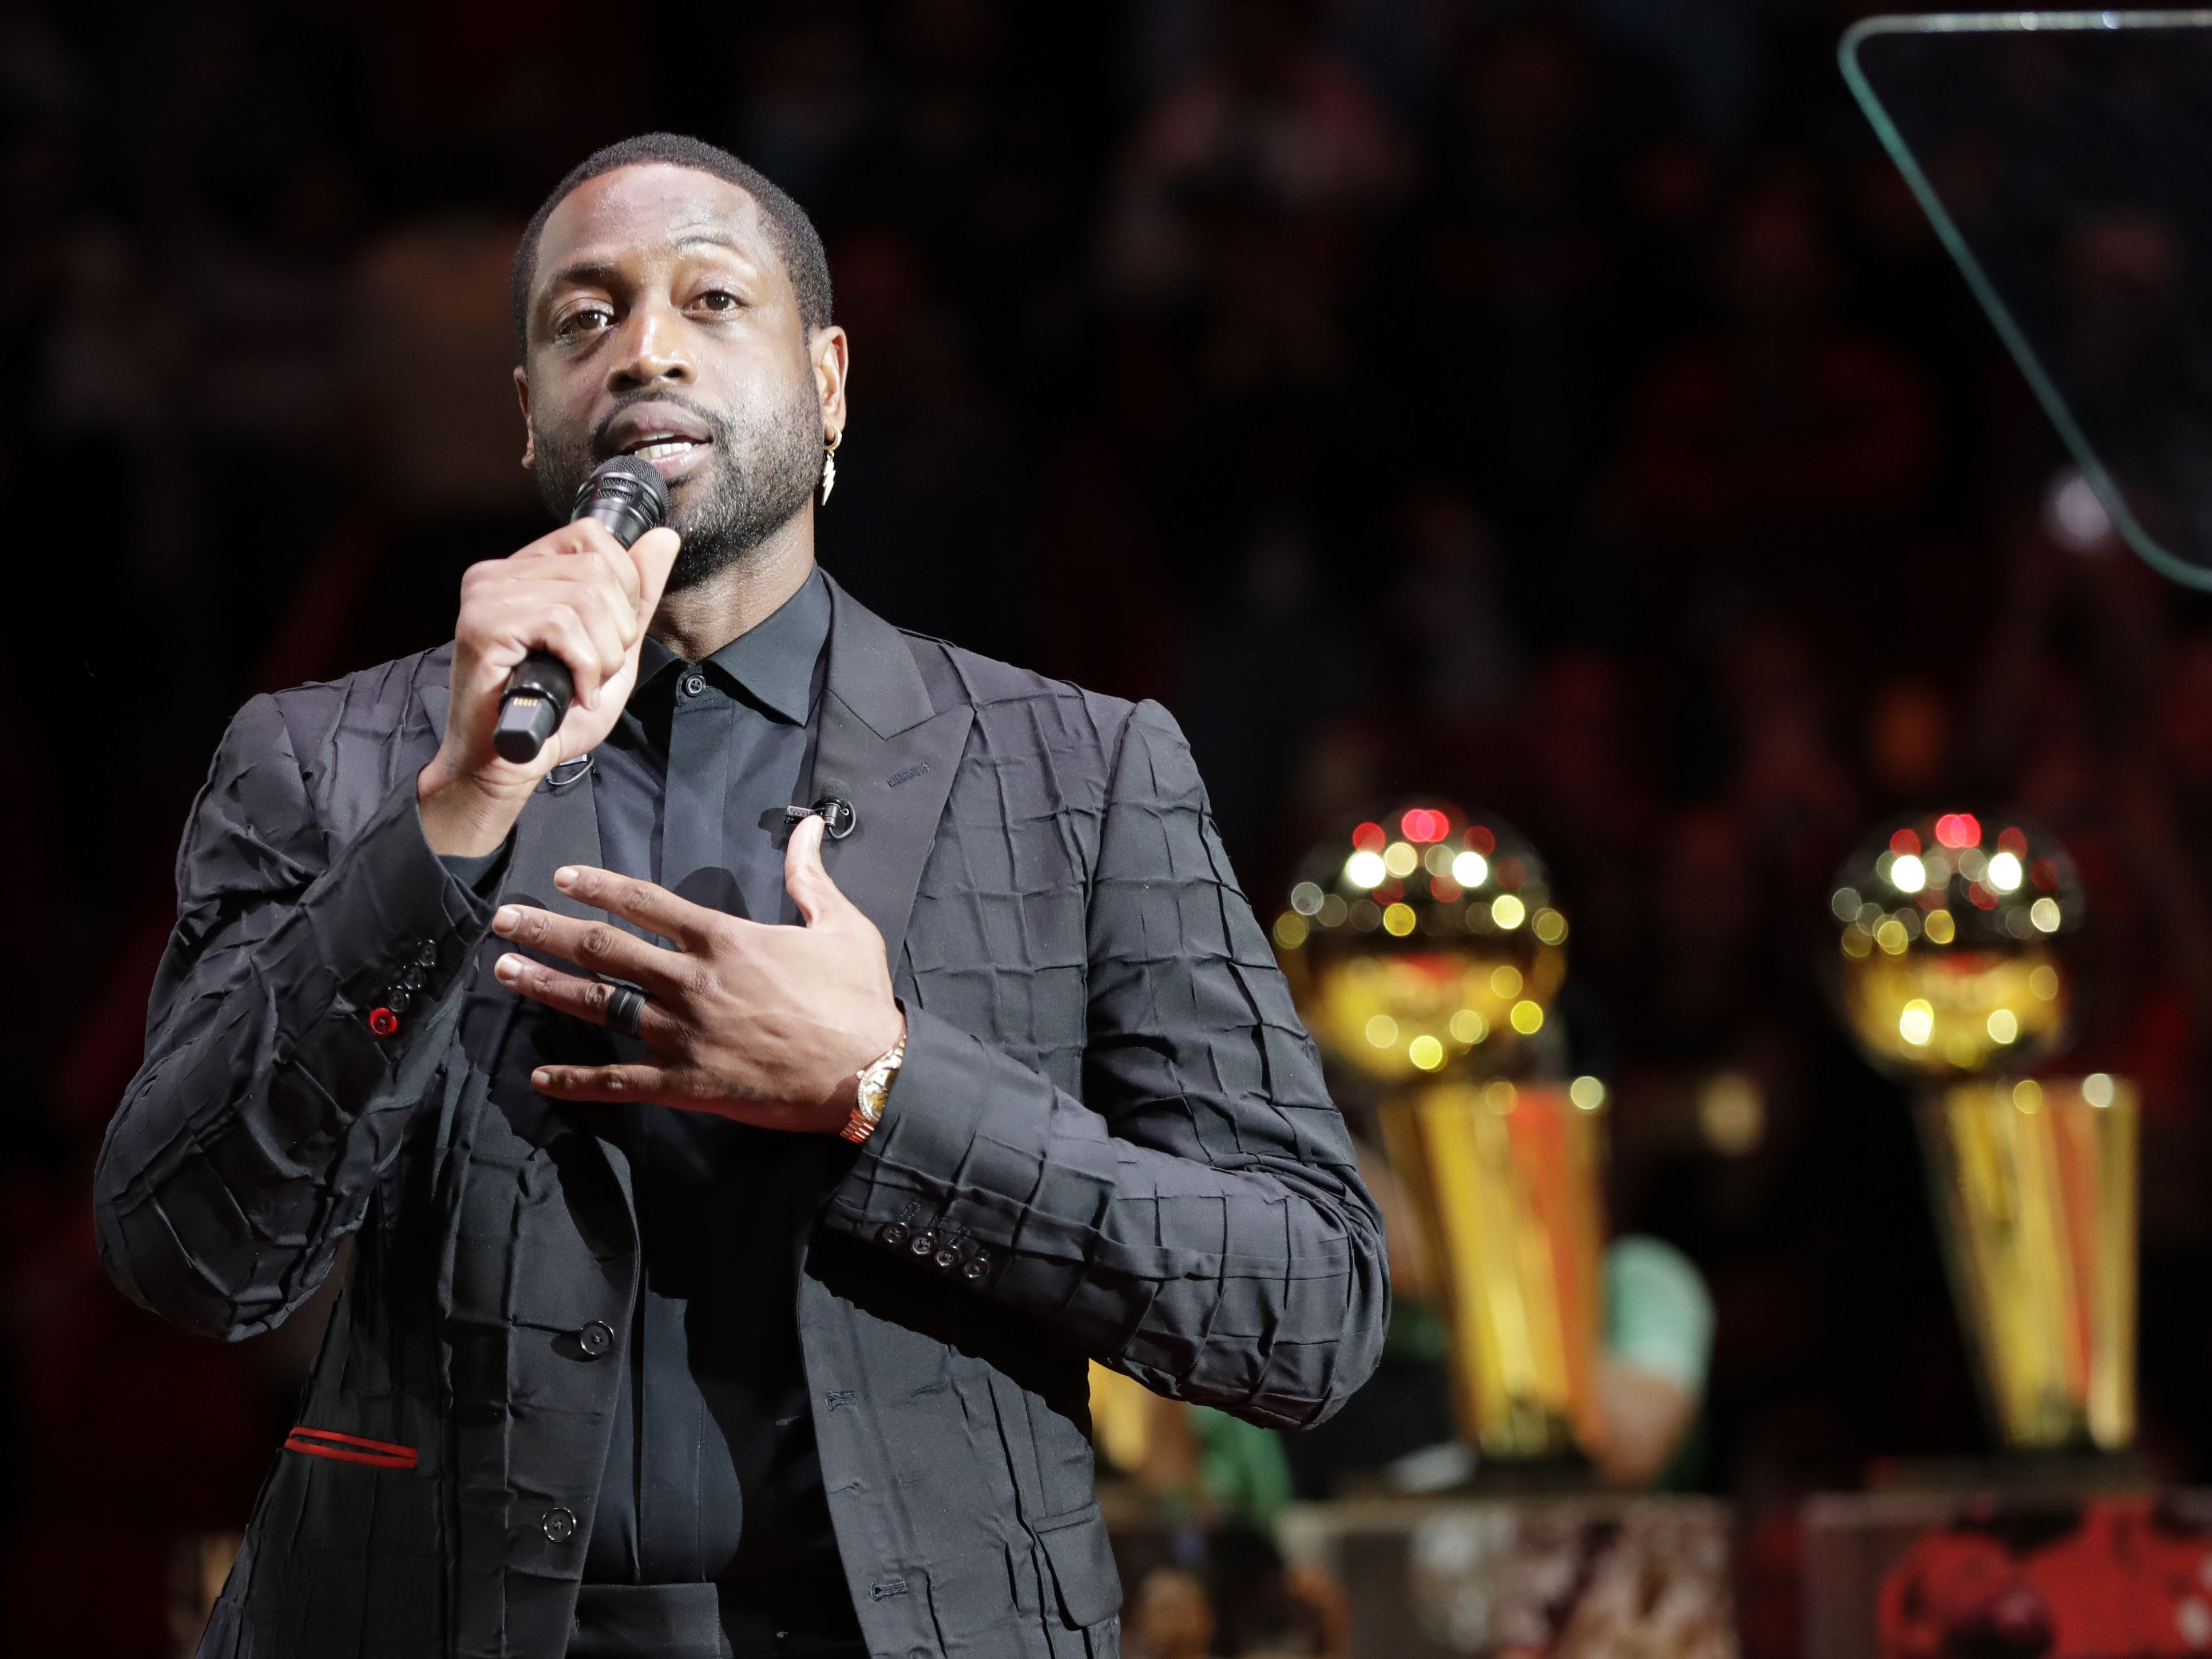 Heat rout Cavs 124-105 as Wade is honored at halftime